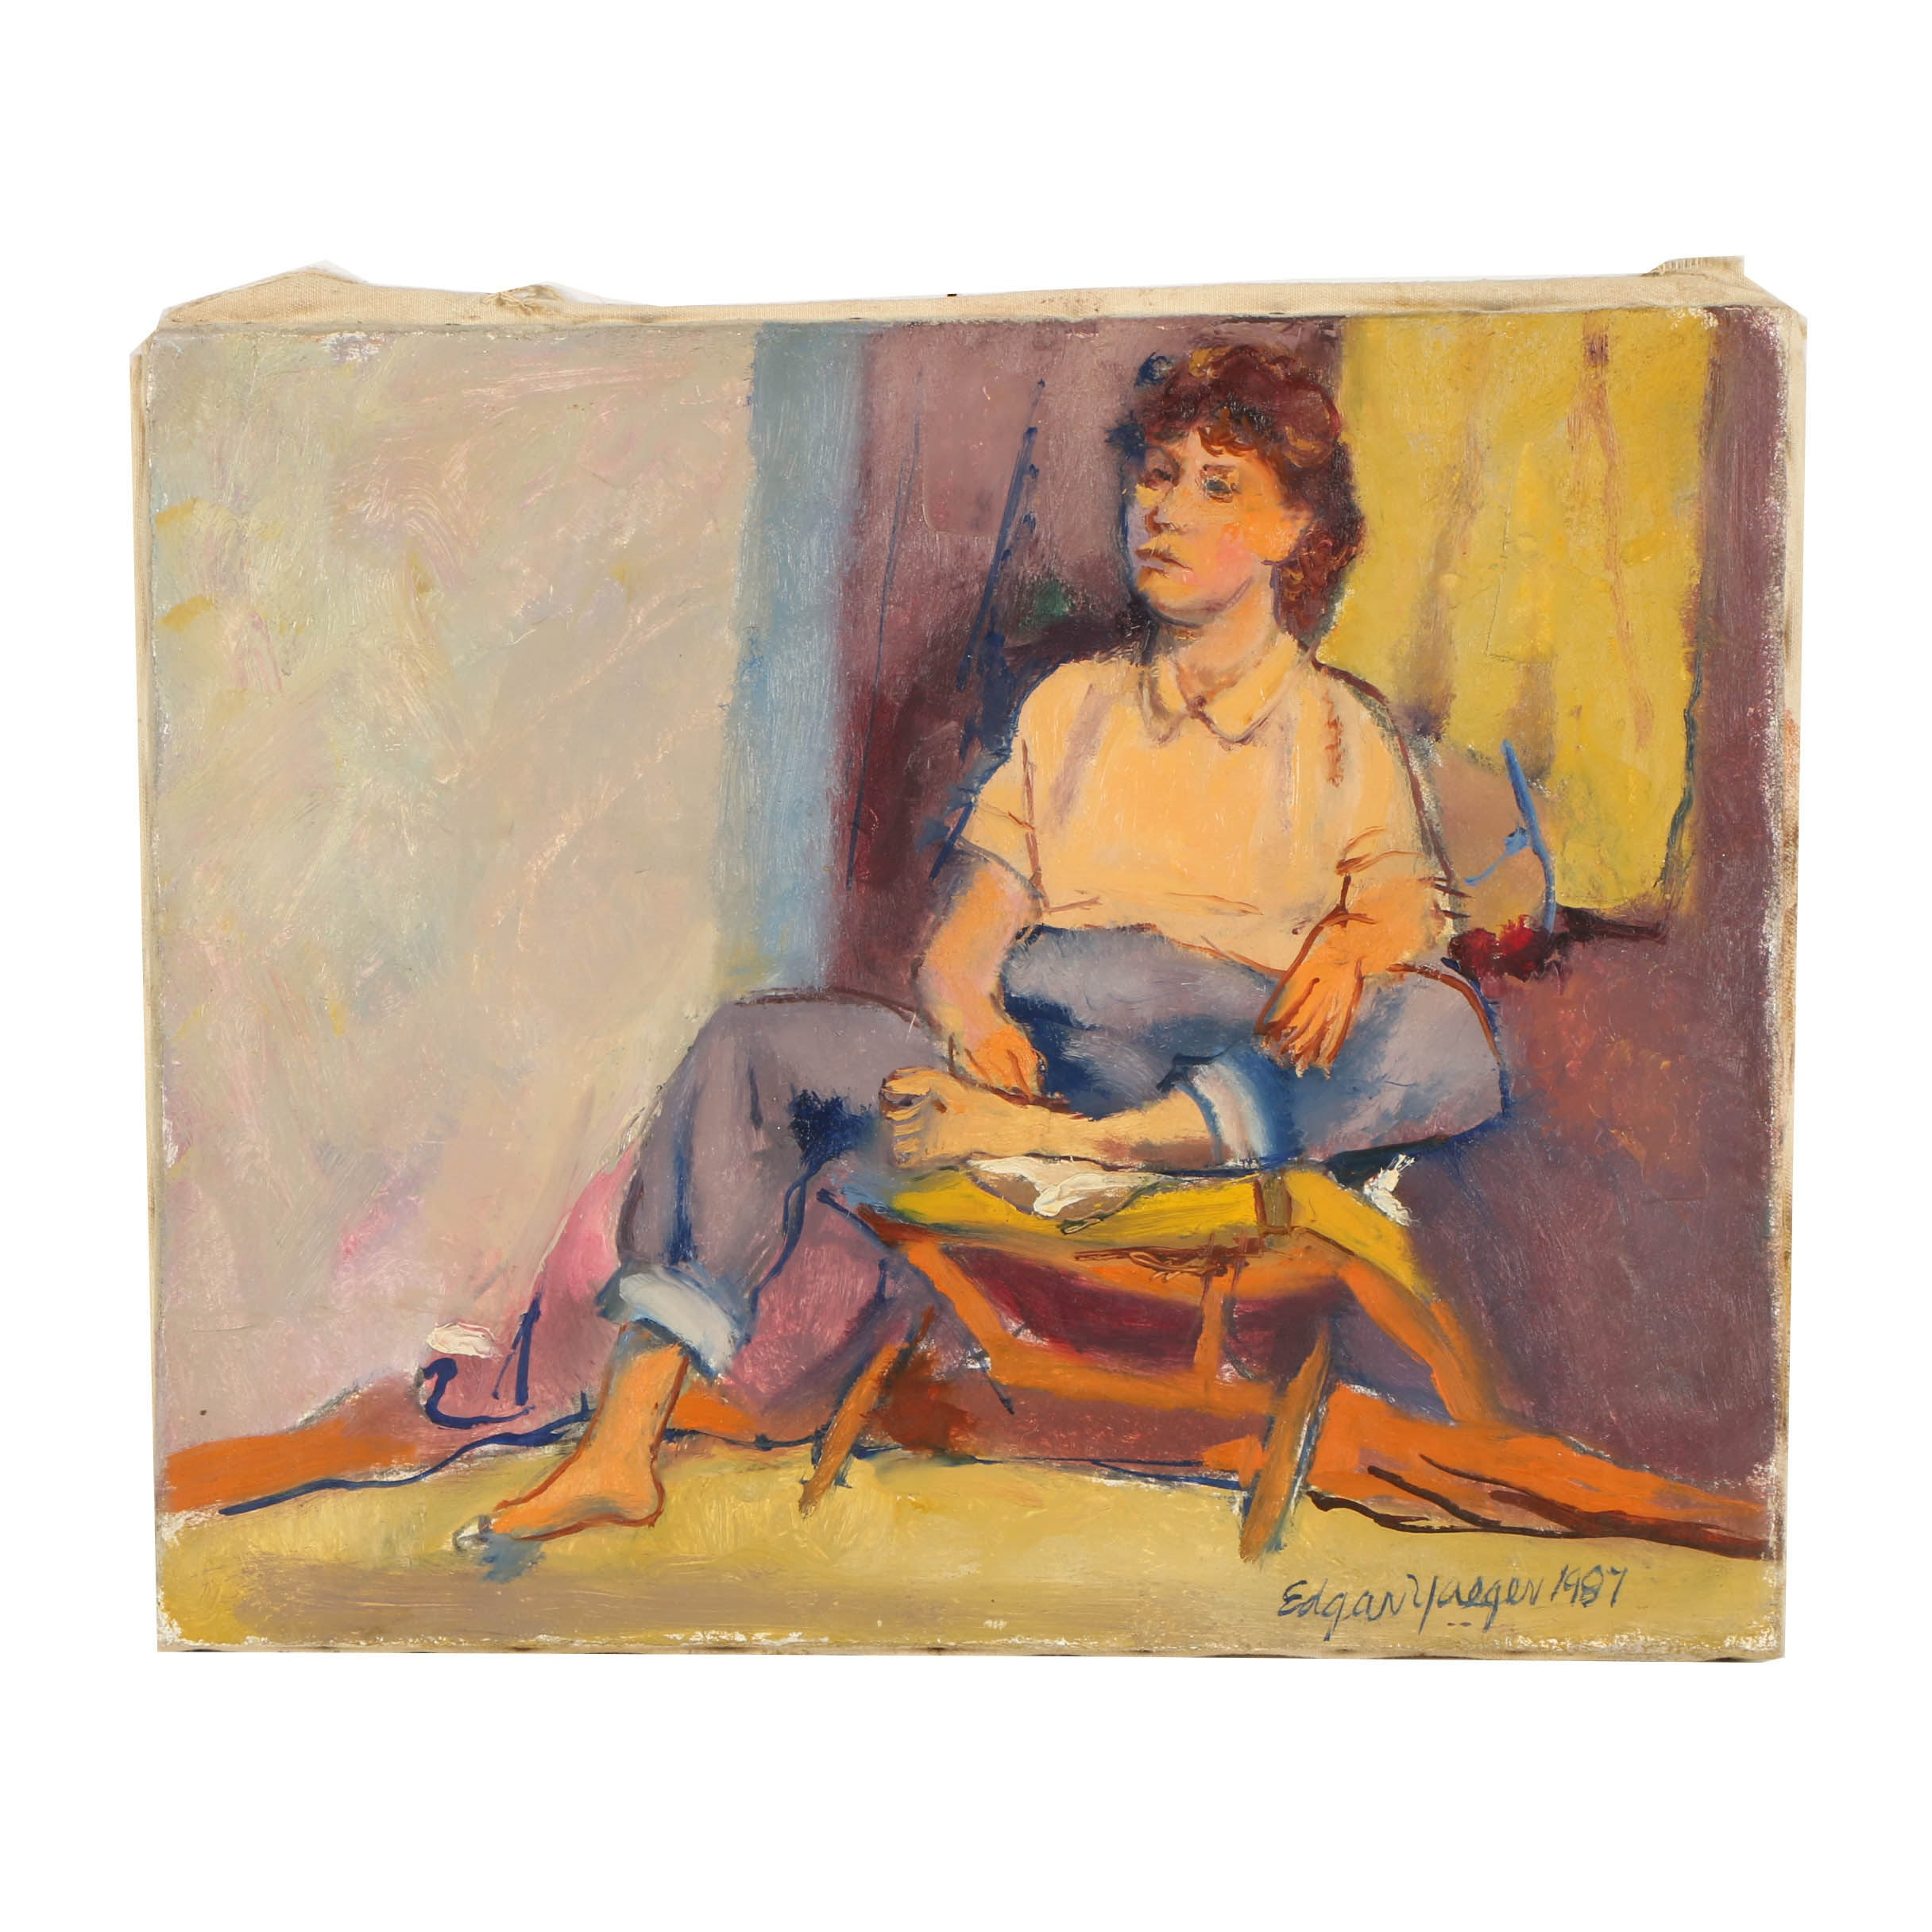 Edgar Yaeger Oil Painting on Canvas of a Figure Study